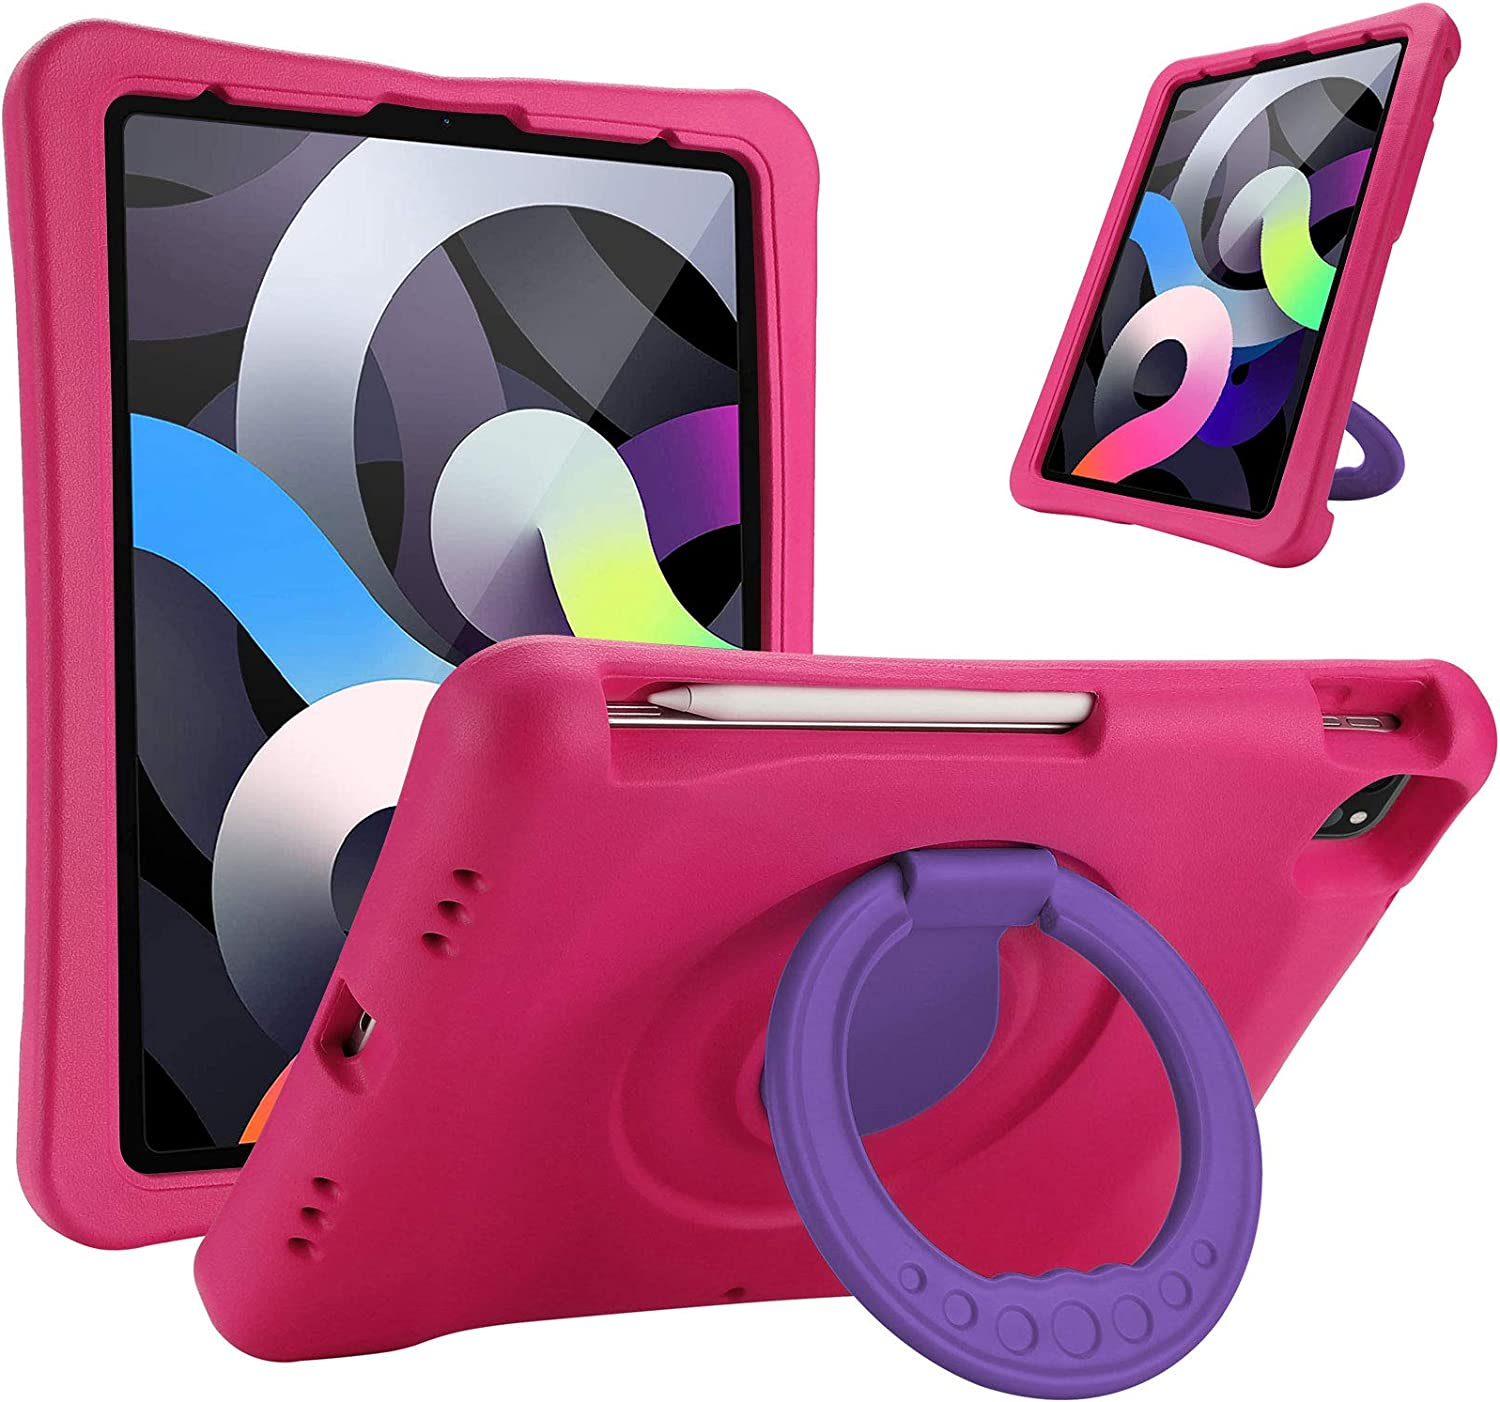 """ProCase Kids Case for iPad Air 4 10.9"""" 2020 / iPad Pro 11 2020 & 2018, Shockproof Rotate Handle Folding Stand Cover Light Weight Kids Friendly Case for iPad Air 10.9'' (4th Gen) / iPad Pro 11 –Magenta"""